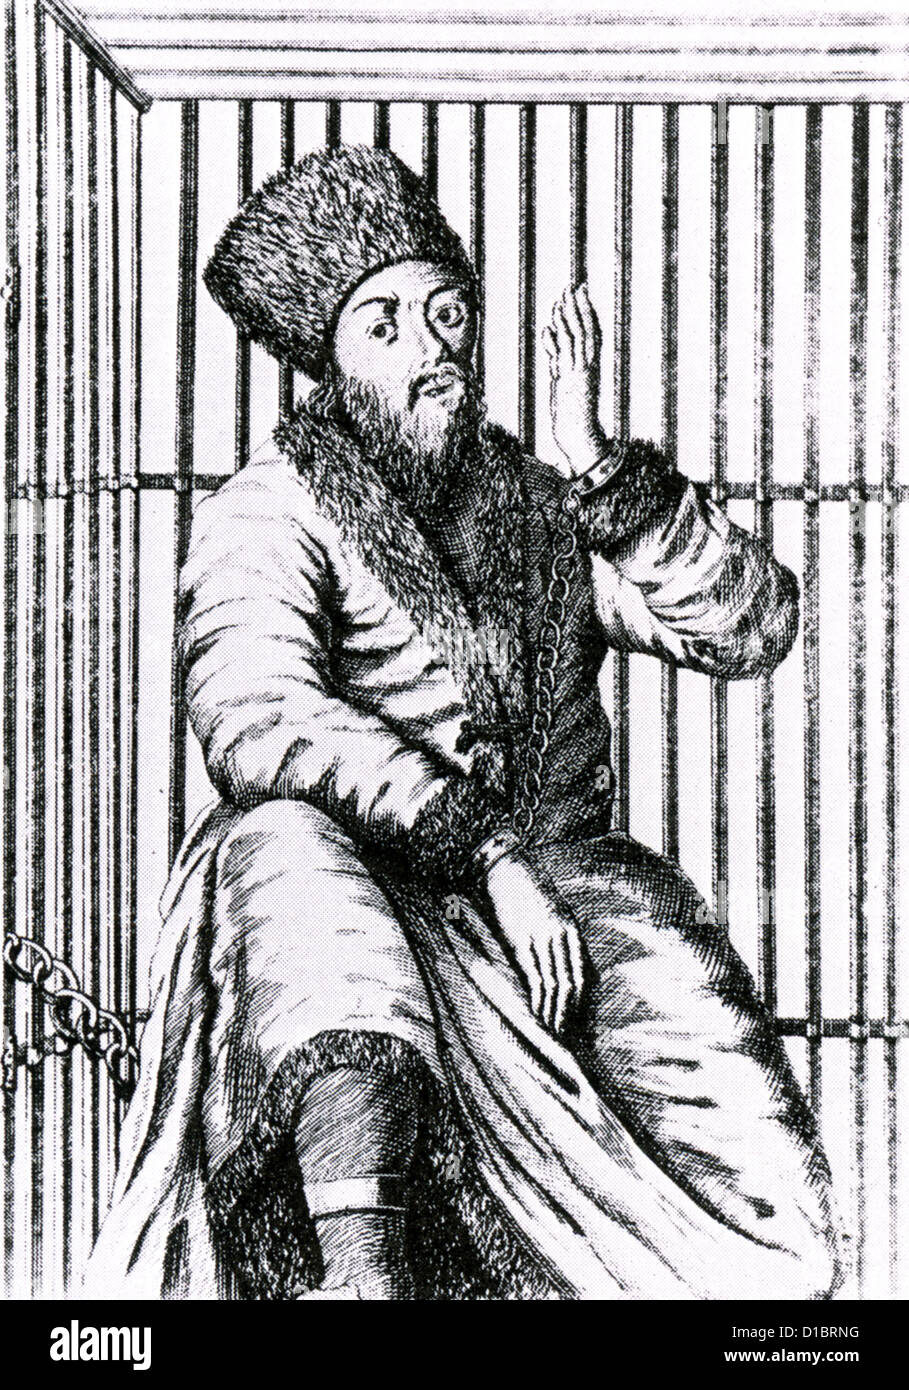 YEMELYAN PUGACHEV (1742-1775)  Cossack pretender to the Russian throne being exhibited in a cage after rebellion - Stock Image